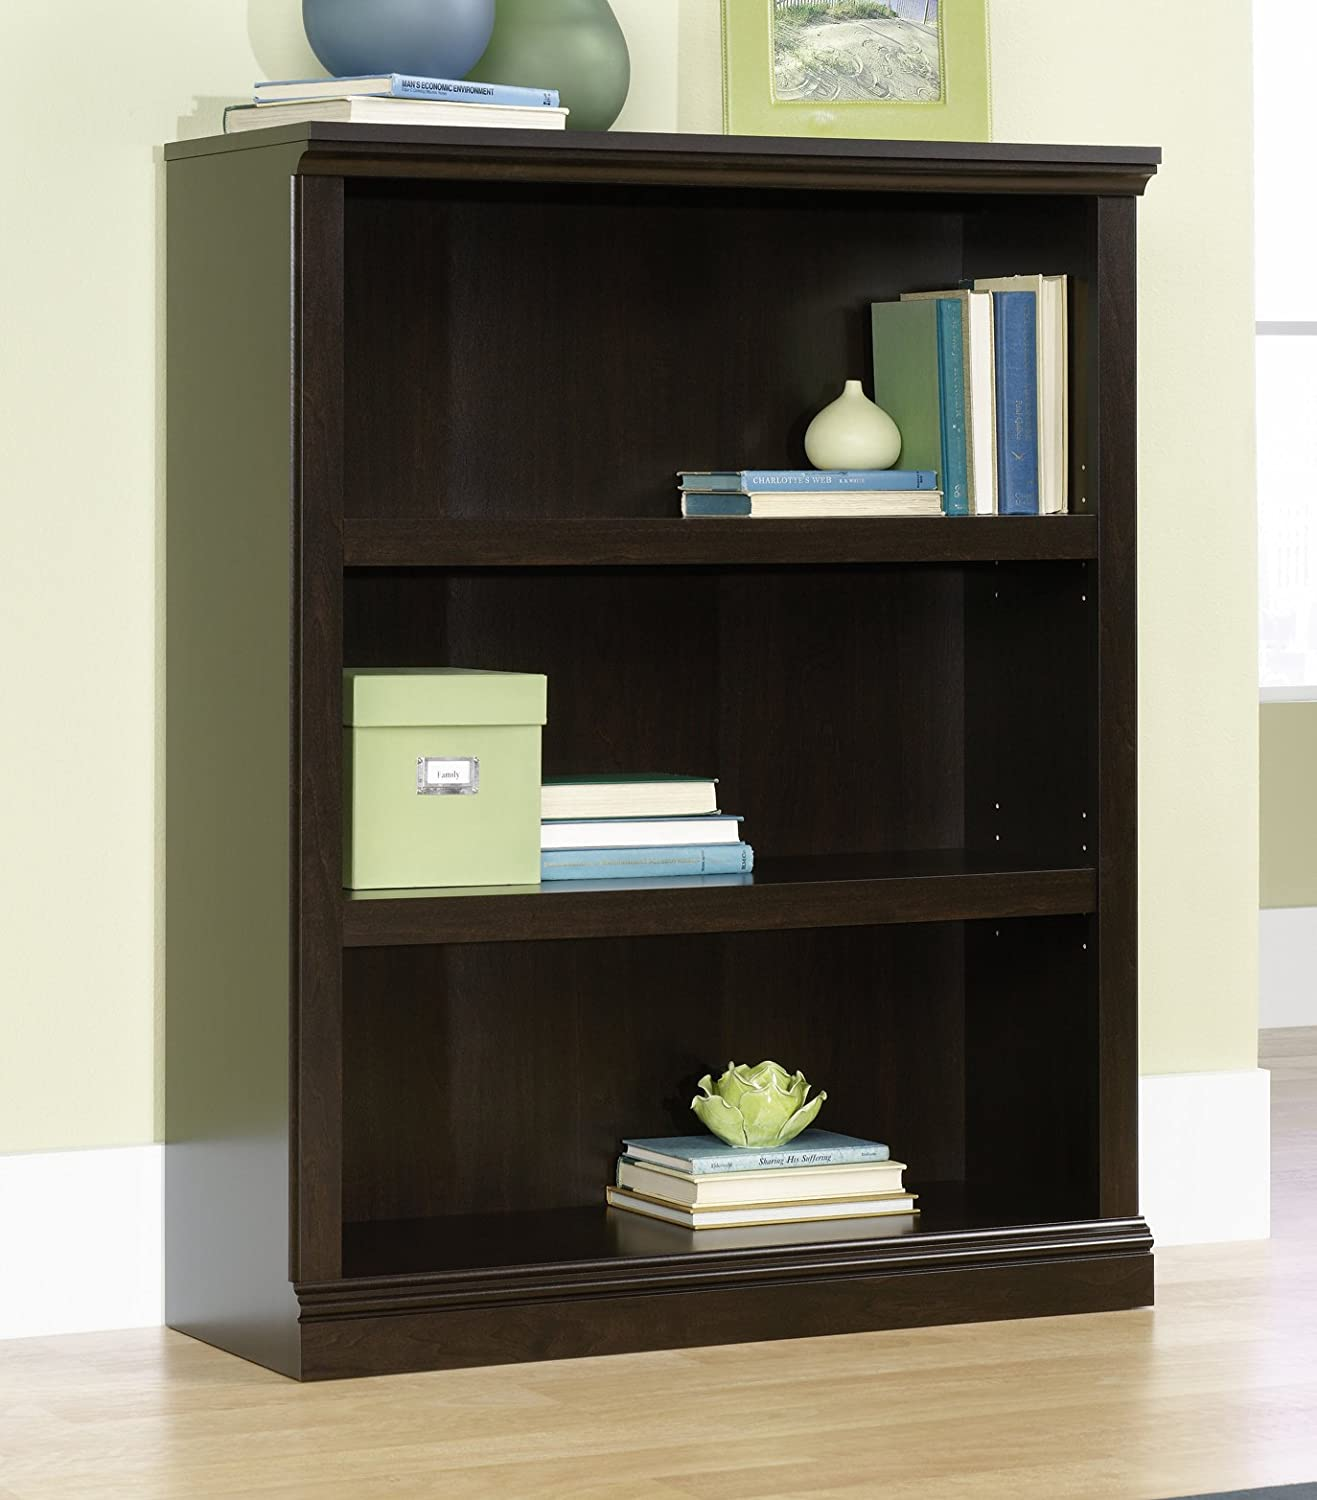 Sauder 3-Shelf Bookcase, Jamocha Wood Finish 410373